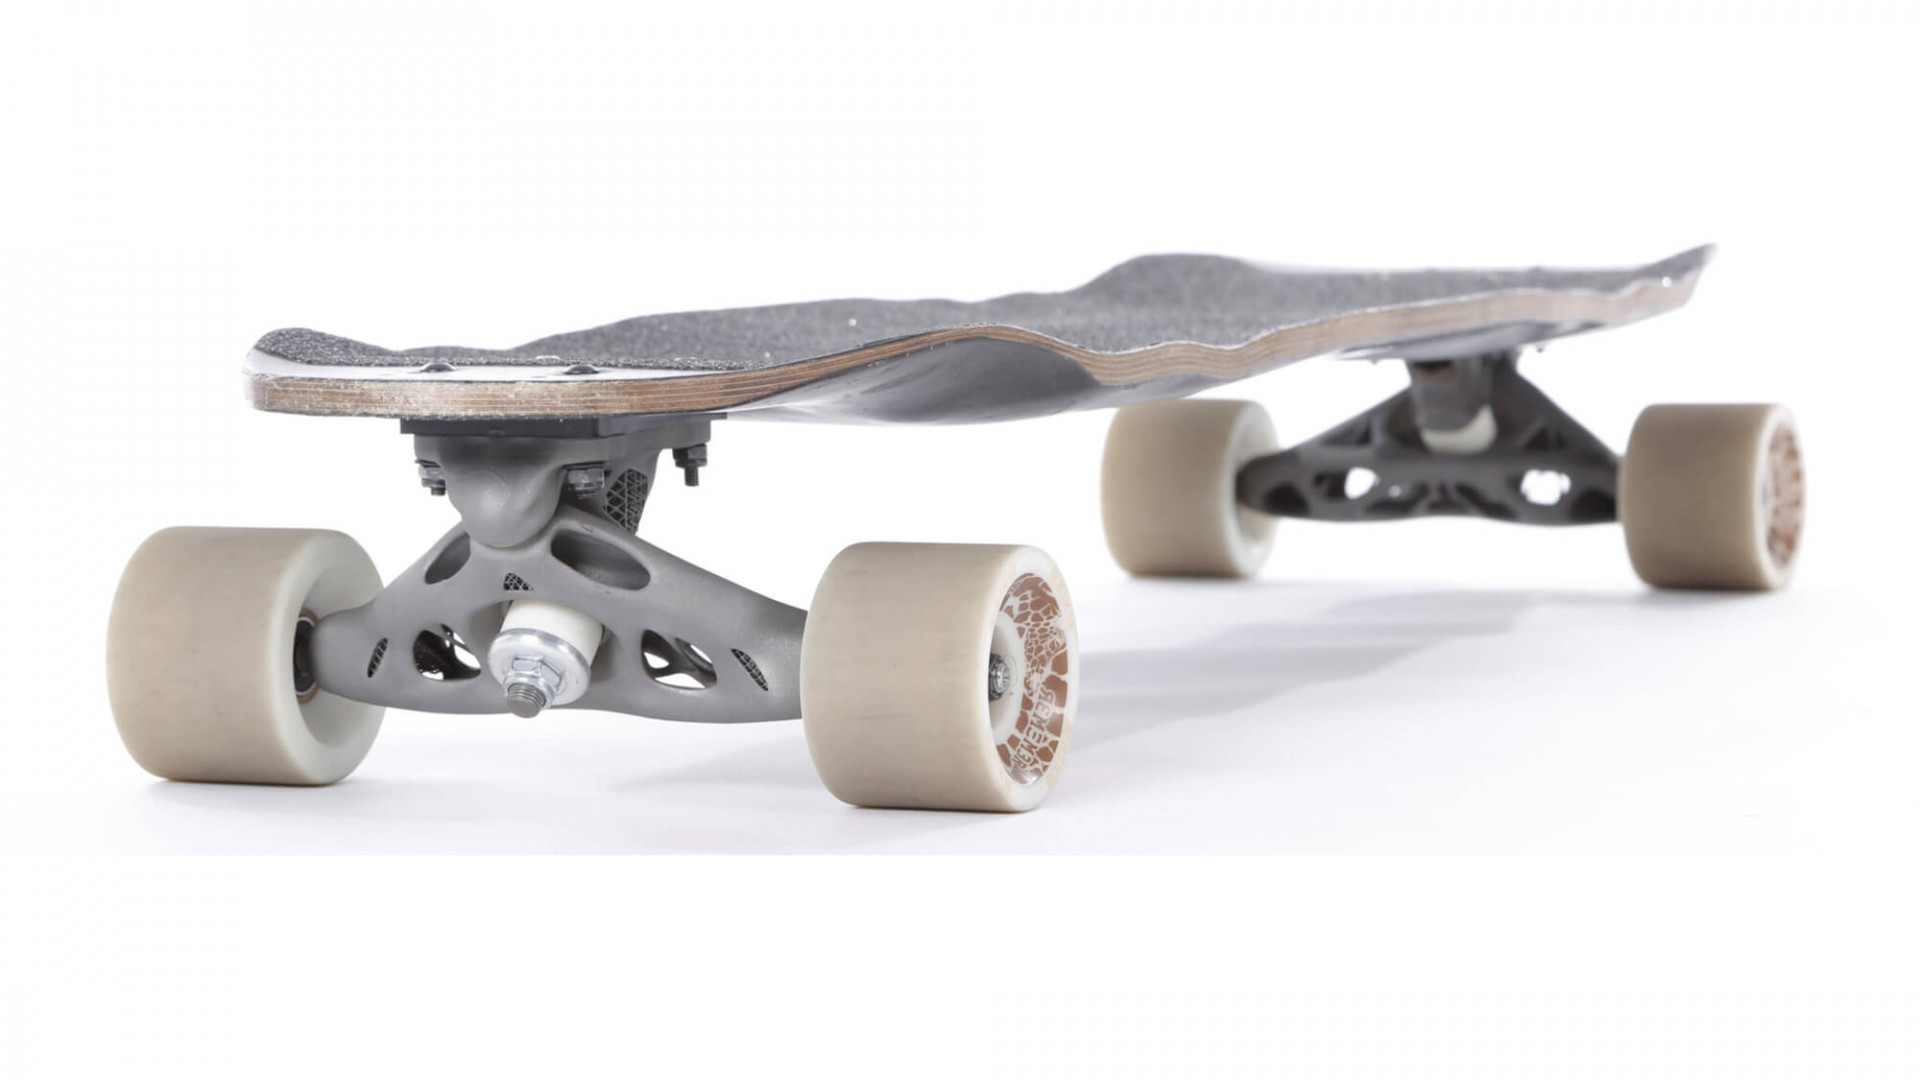 Skateboard Trucks Optimized For Downhill Racing With Metal